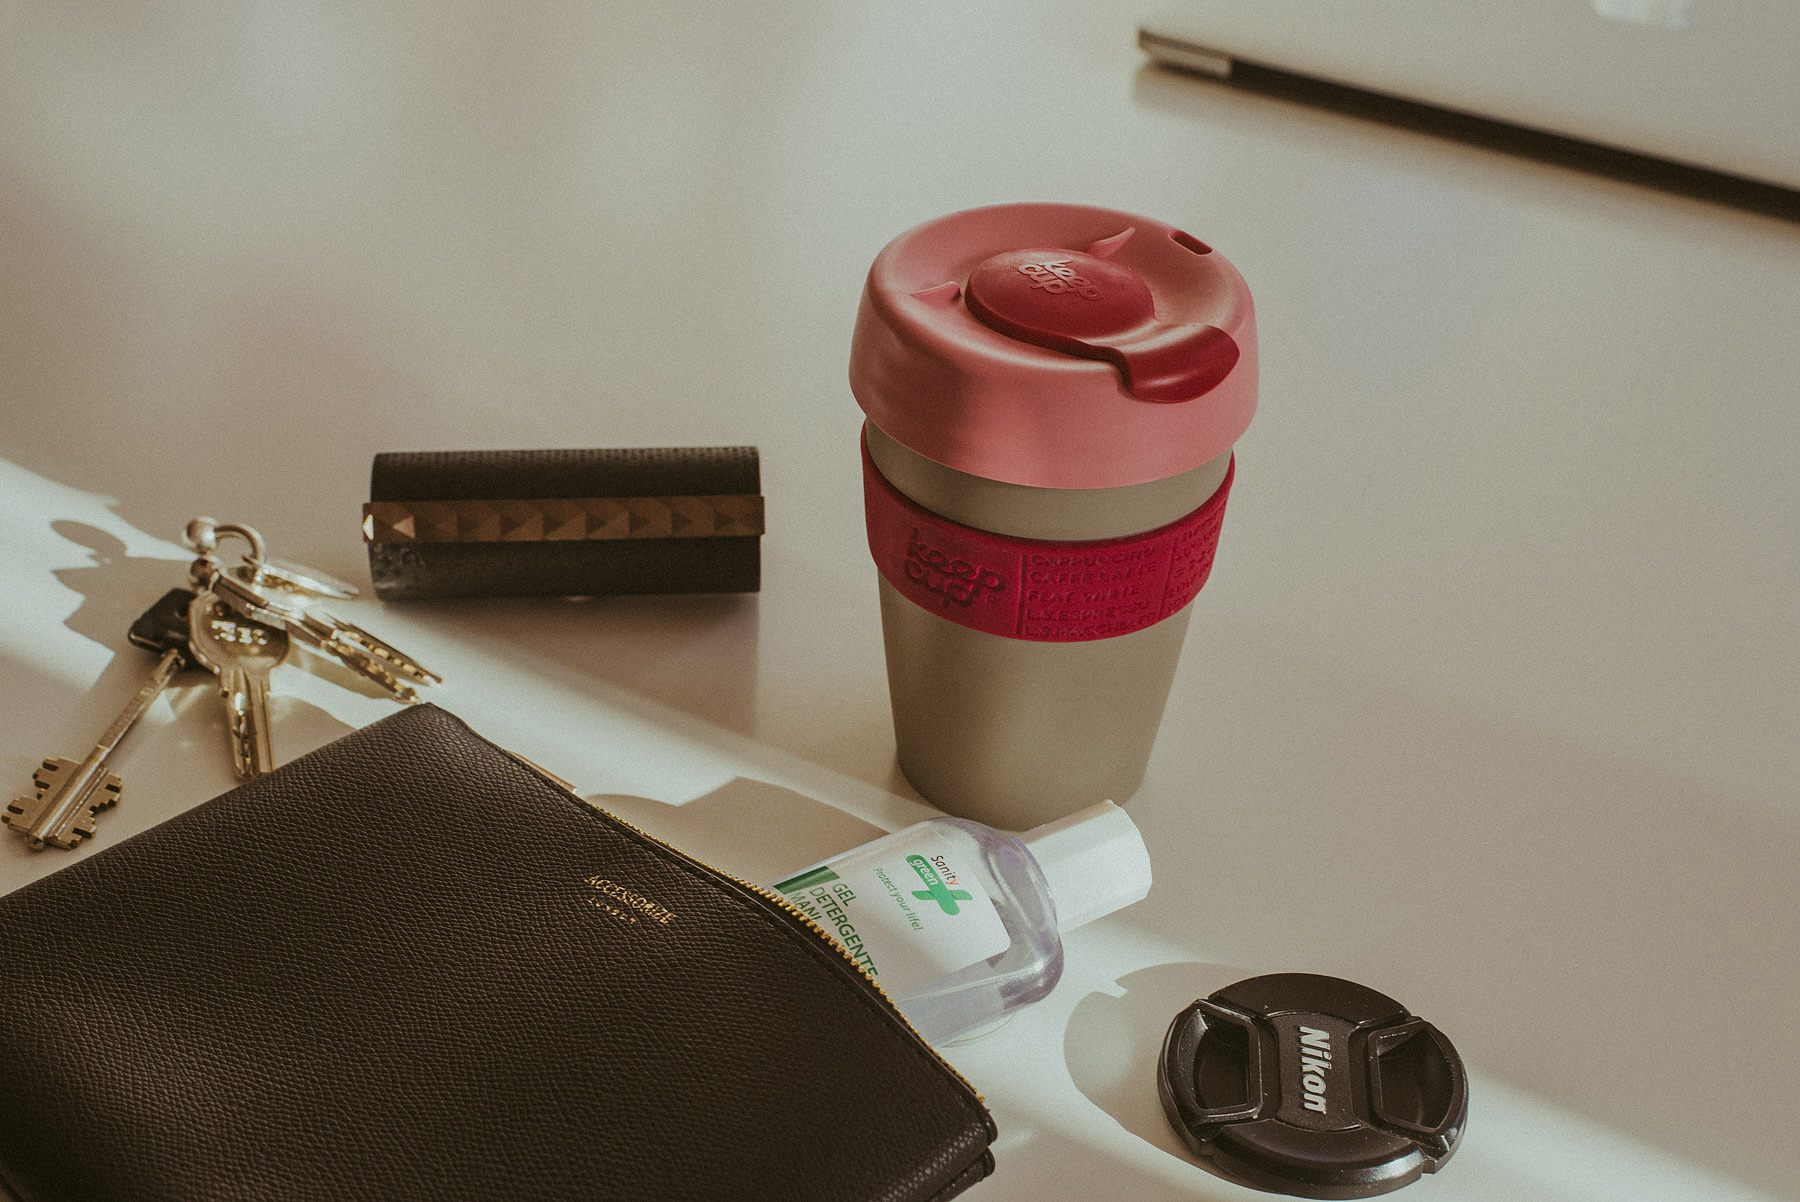 Keep Cup mug in pink and grey an a table with an Accessorize pouch, keys, hand sanitizer